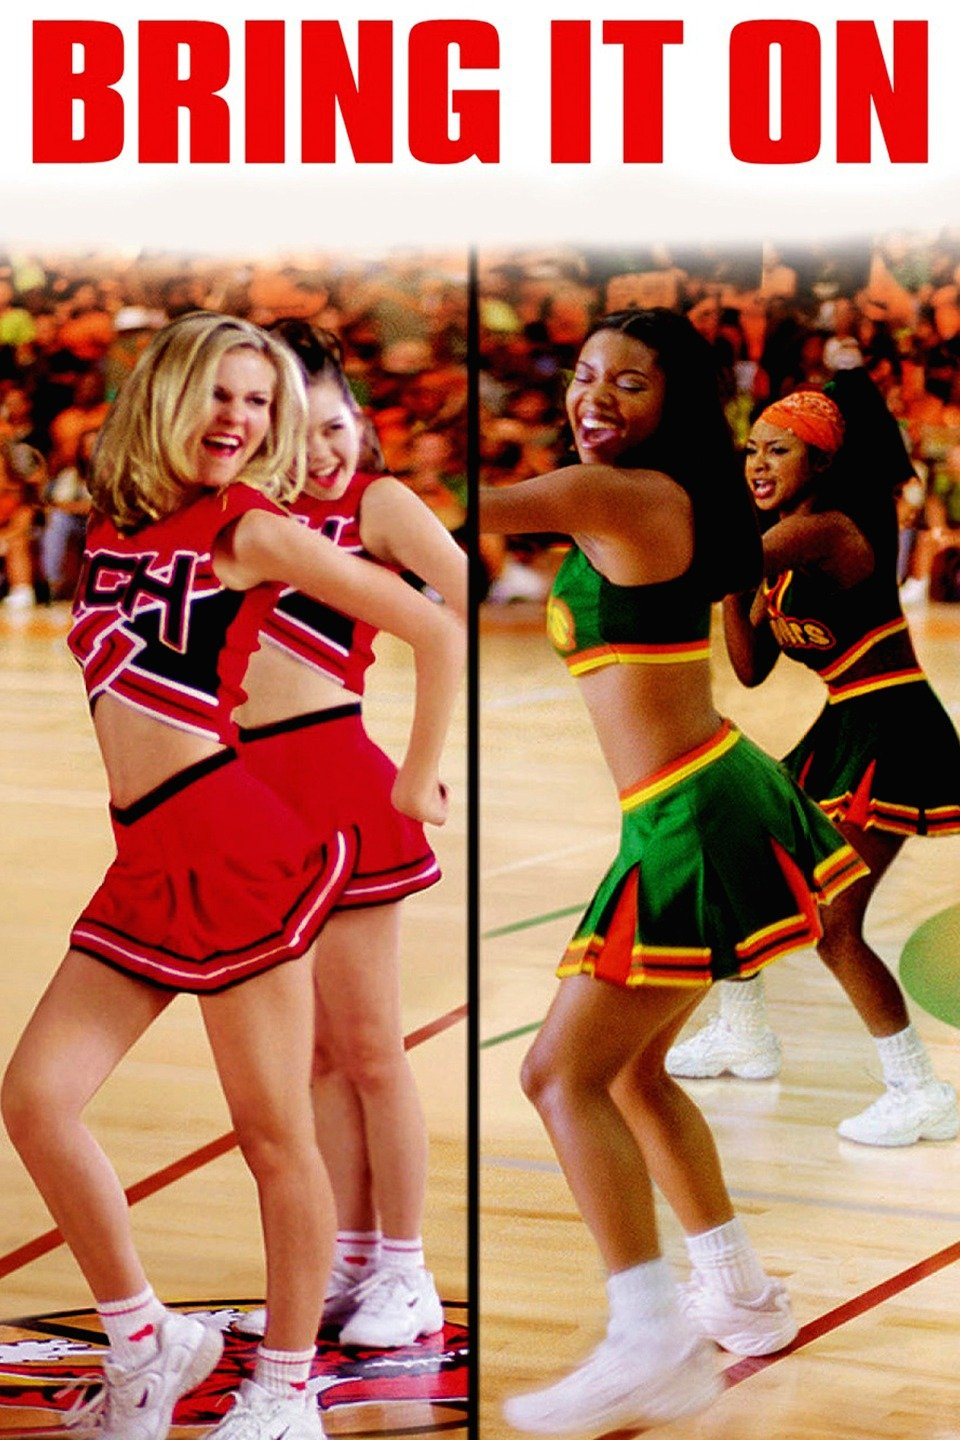 Image result for bring it on